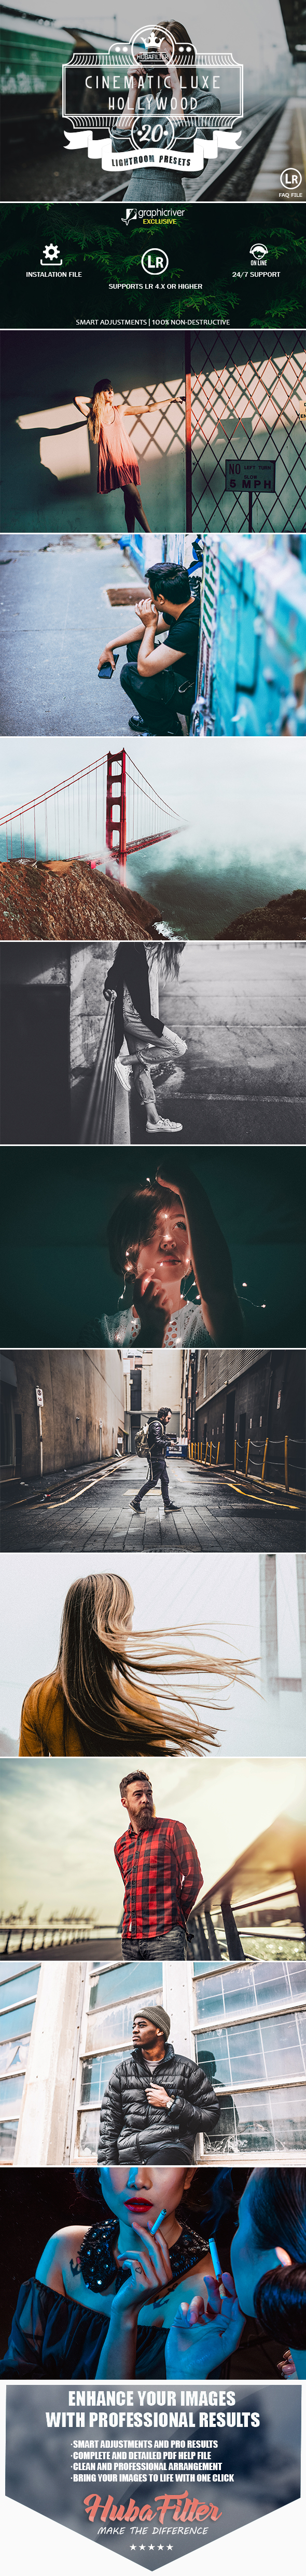 20 Cinematic Luxe Hollywood Lightroom Presets - Cinematic Lightroom Presets